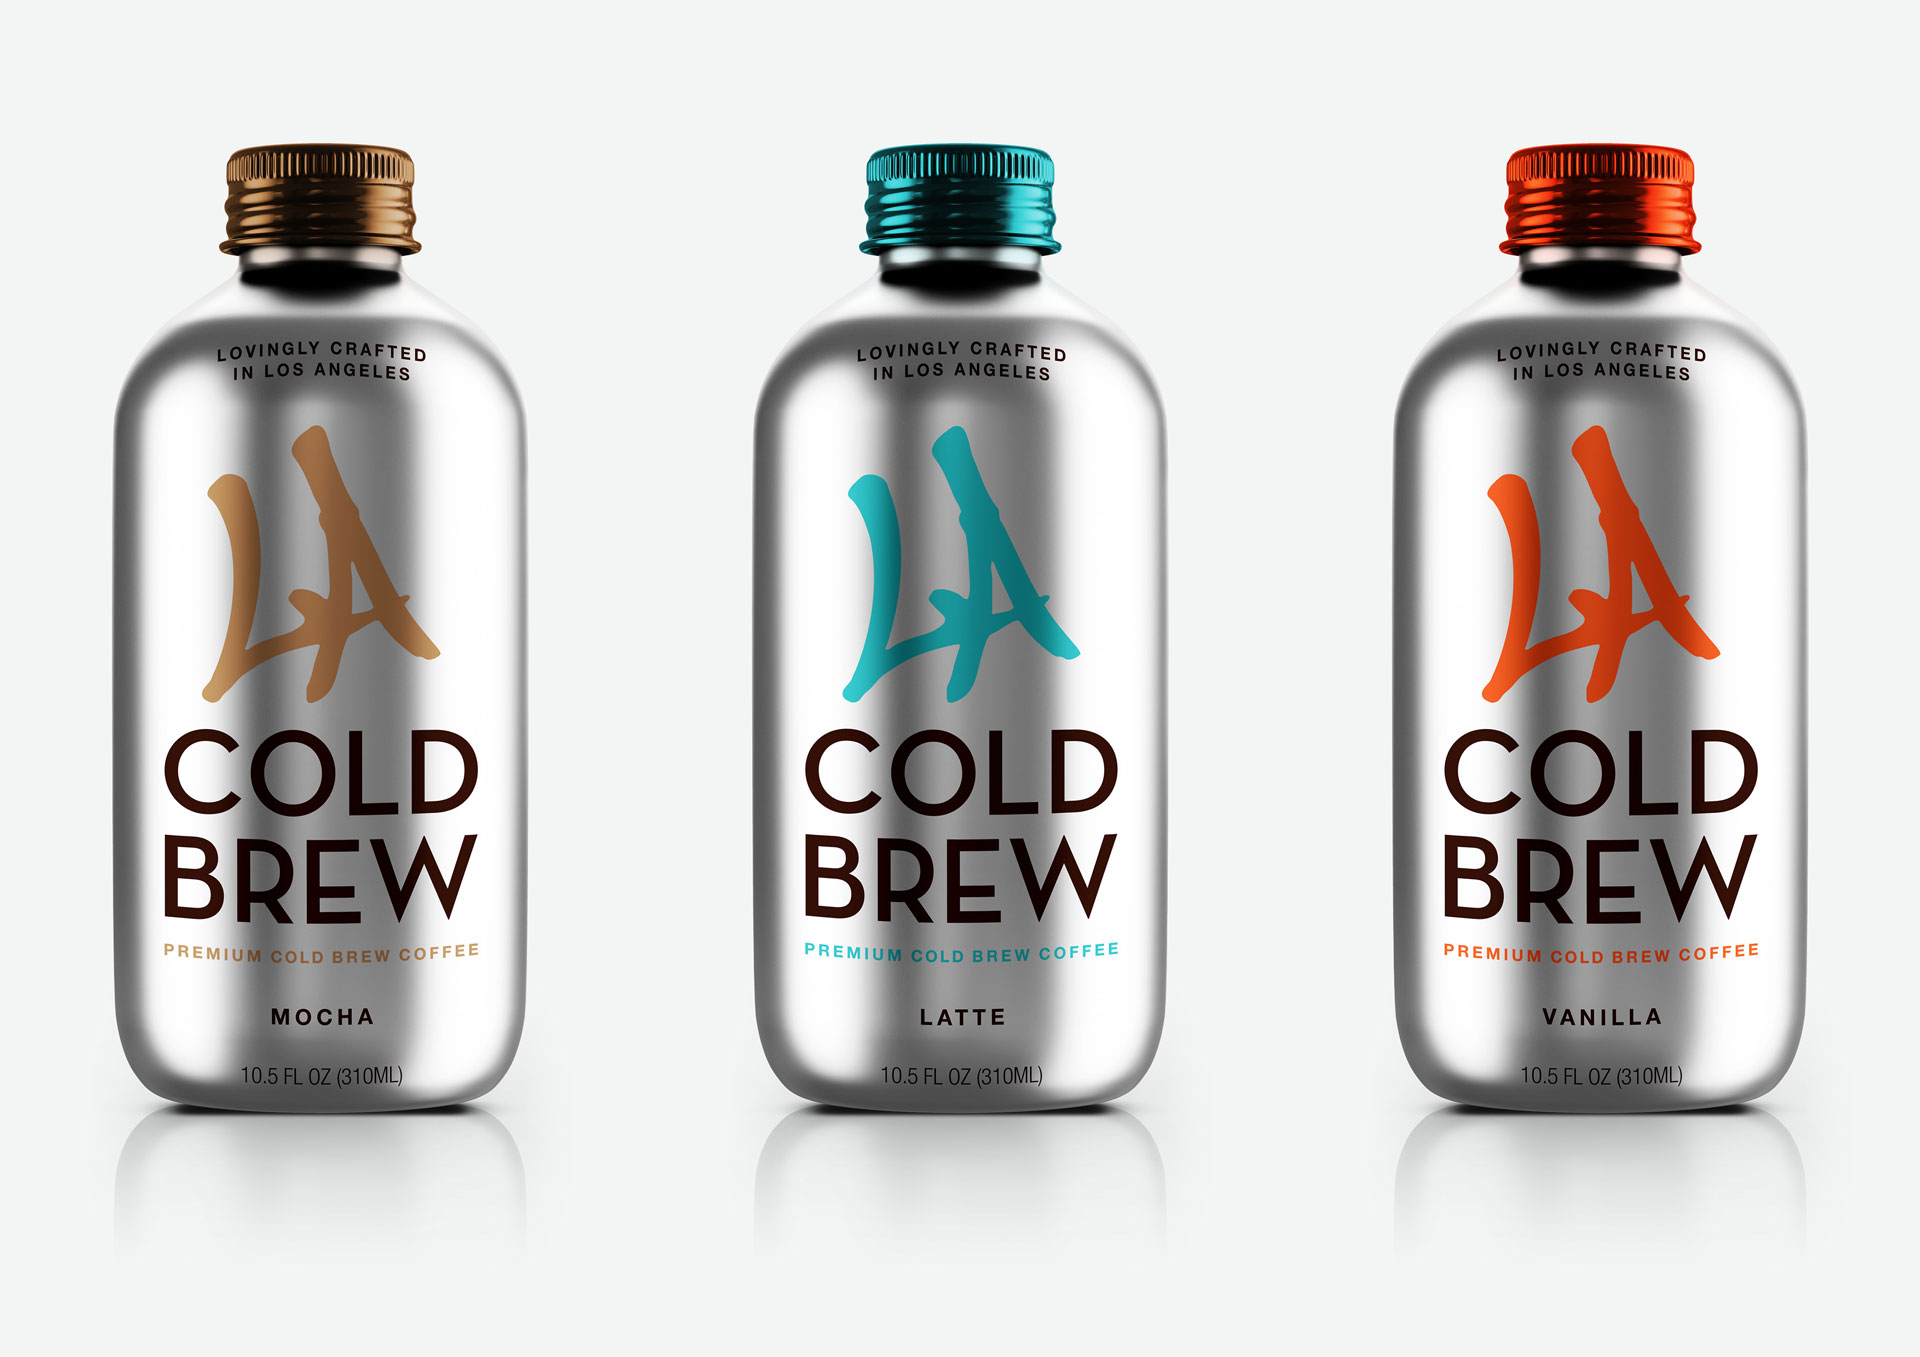 la-cold-brew-packaging-1